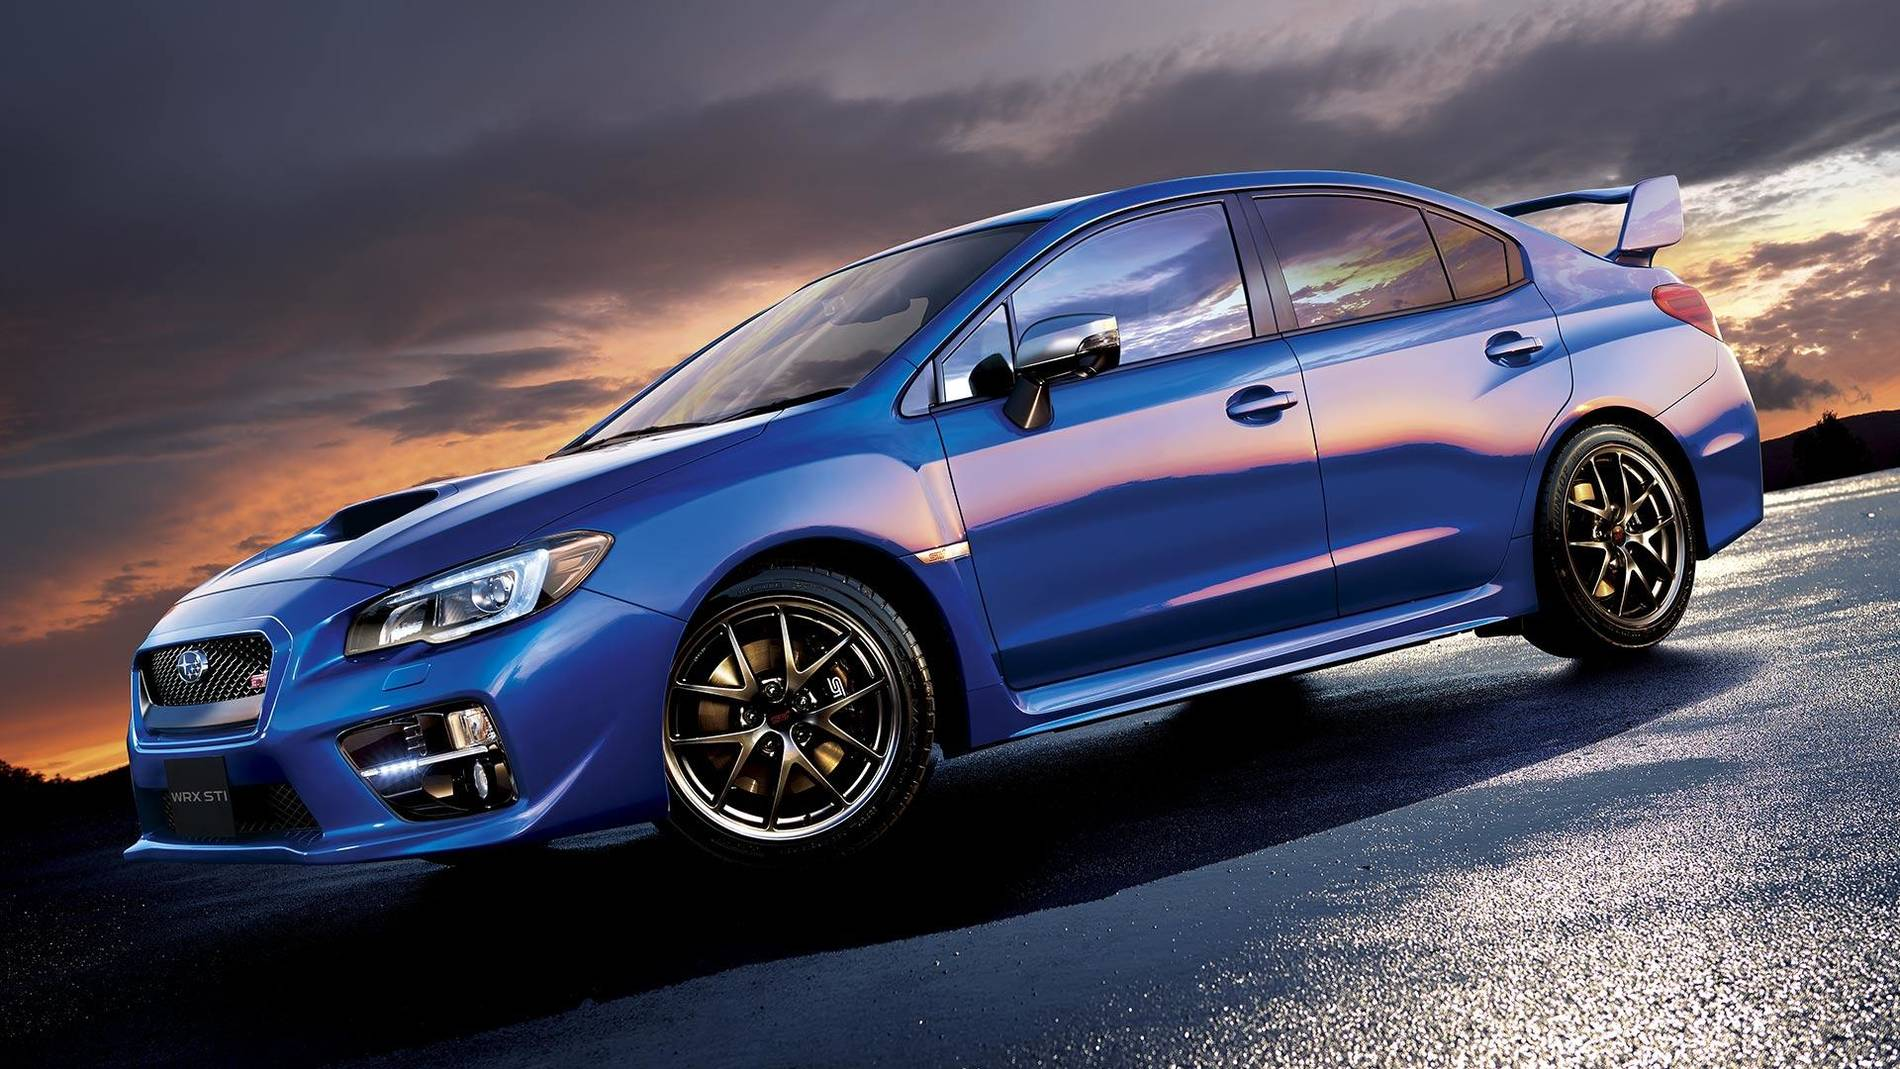 New Subaru Wrx Sti Wallpaper Image Picture